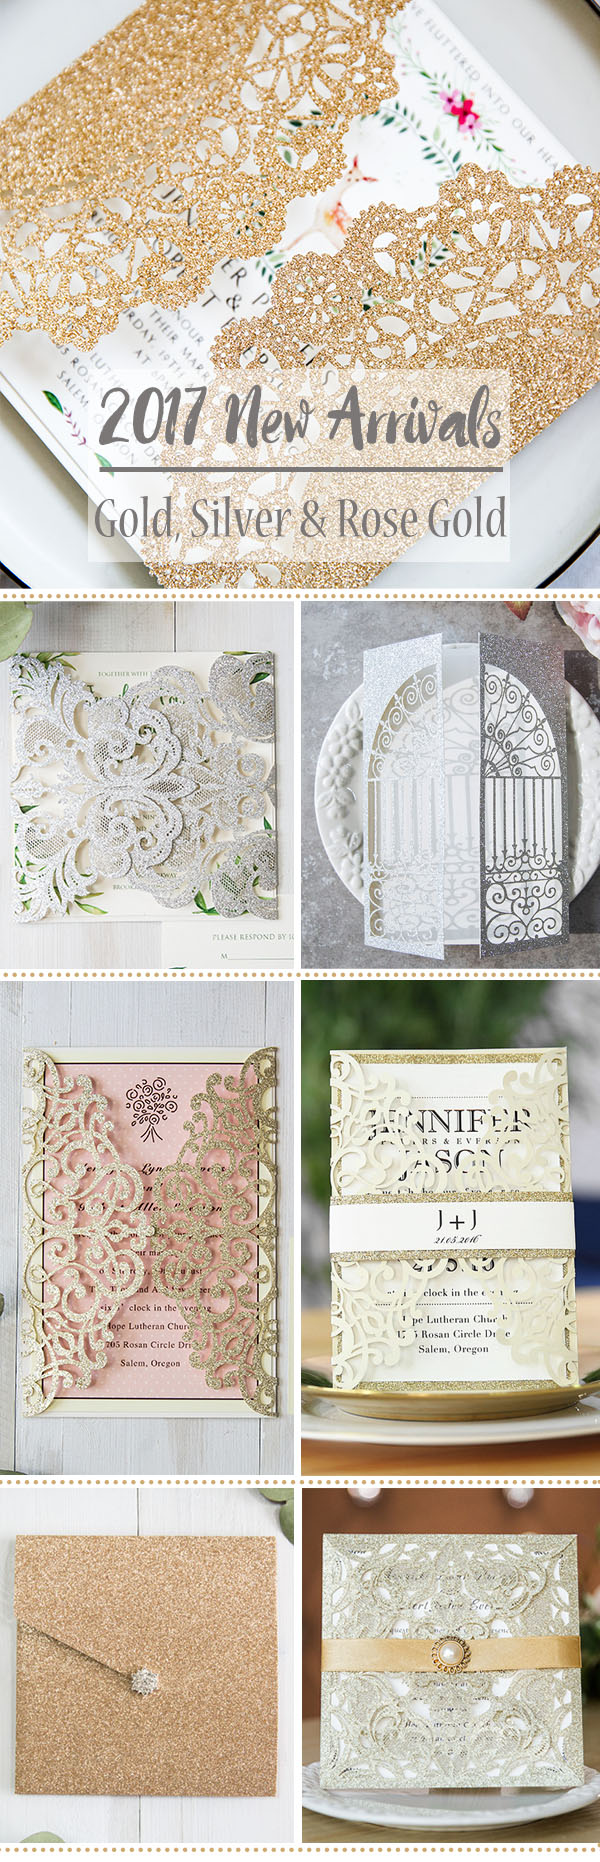 Trendy Glitter Gold & Silver Wedding Invitations From EWI 2017 New Arrivals